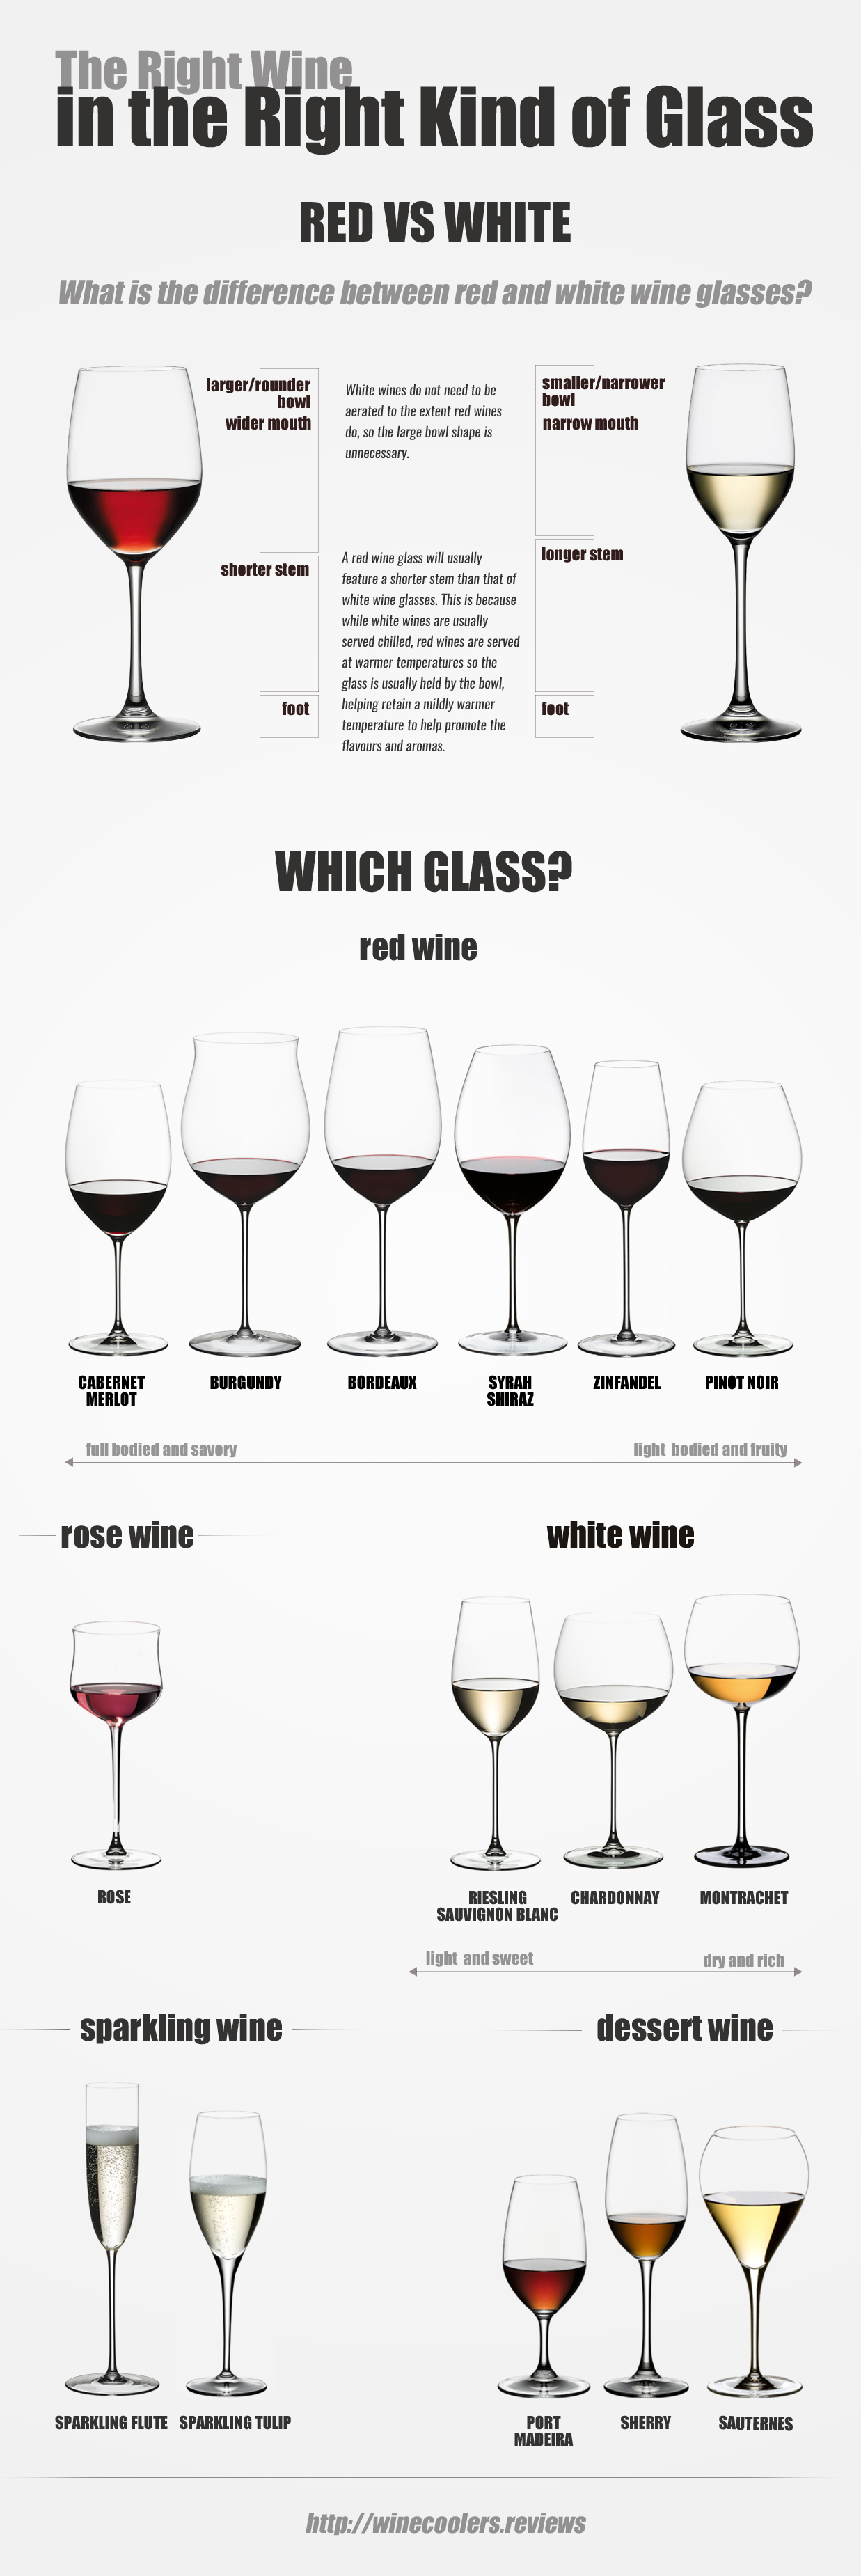 The Right Wine in the Right Kind of Glass: Red vs White